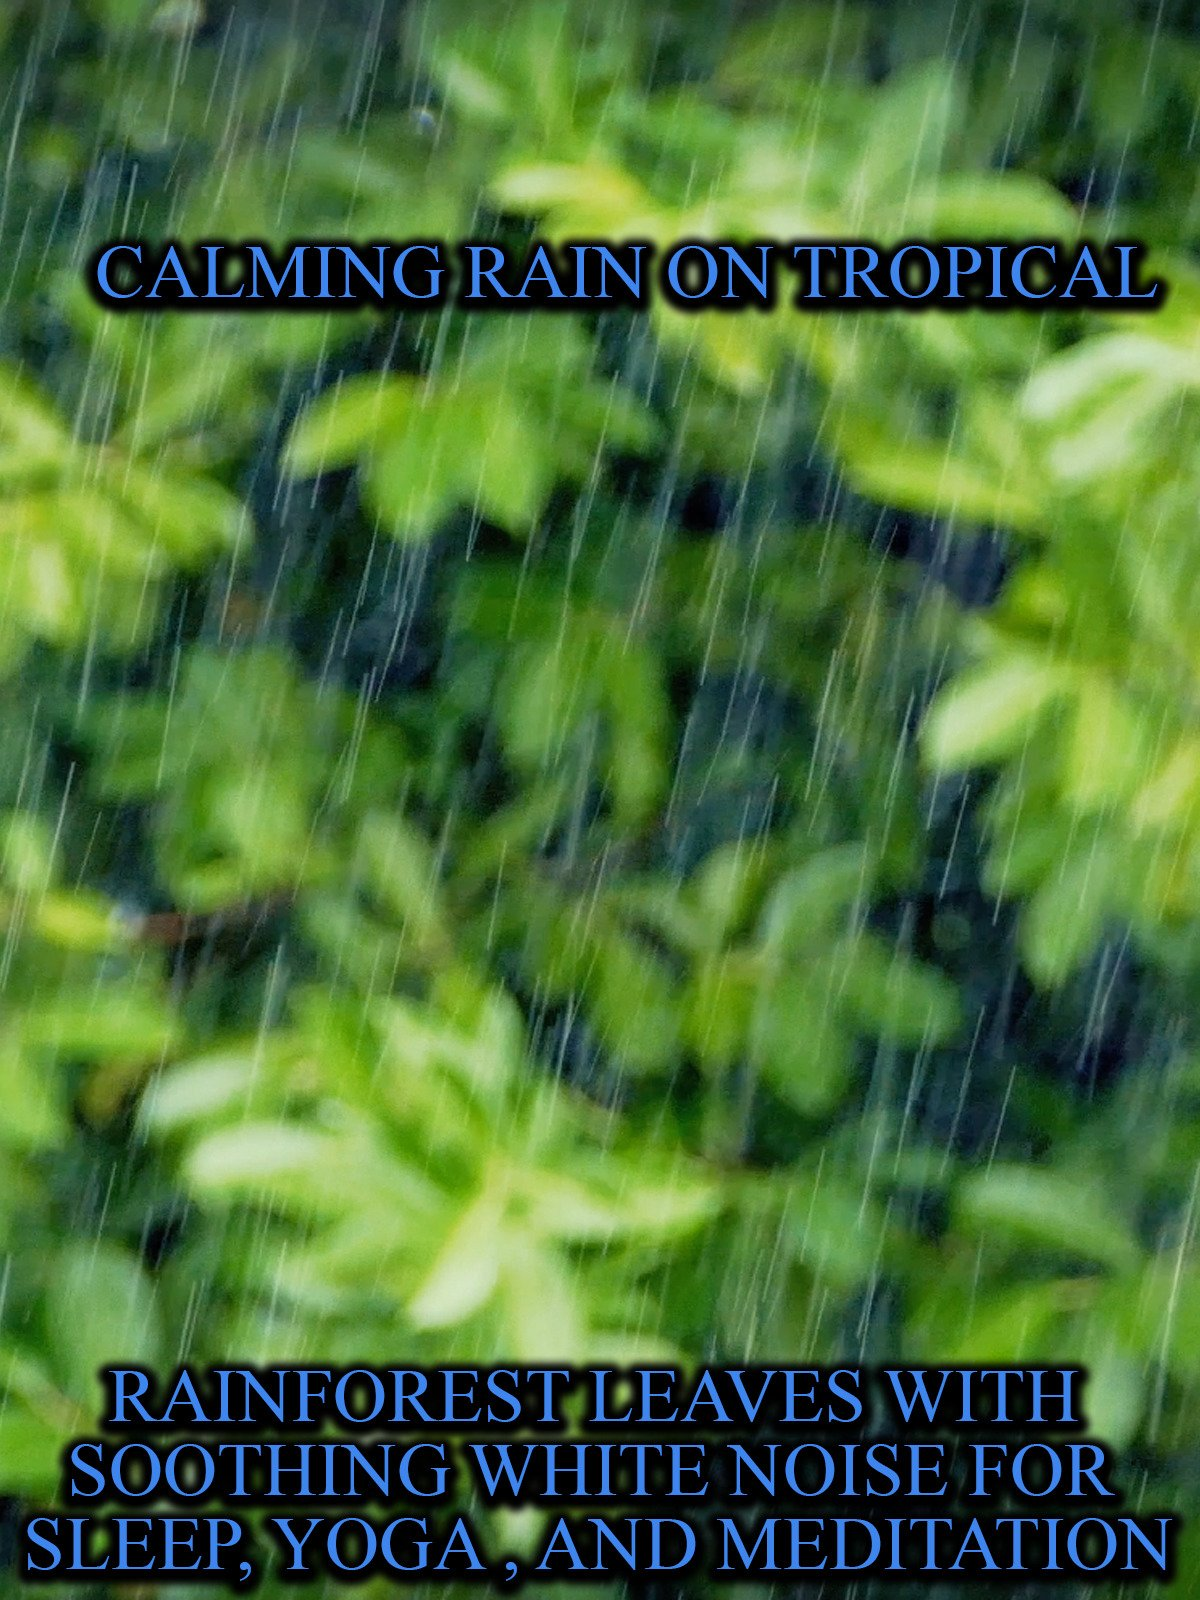 Calming Rain on Tropical Rainforest leaves with Soothing White Noise For Sleep, Yoga, and Meditation